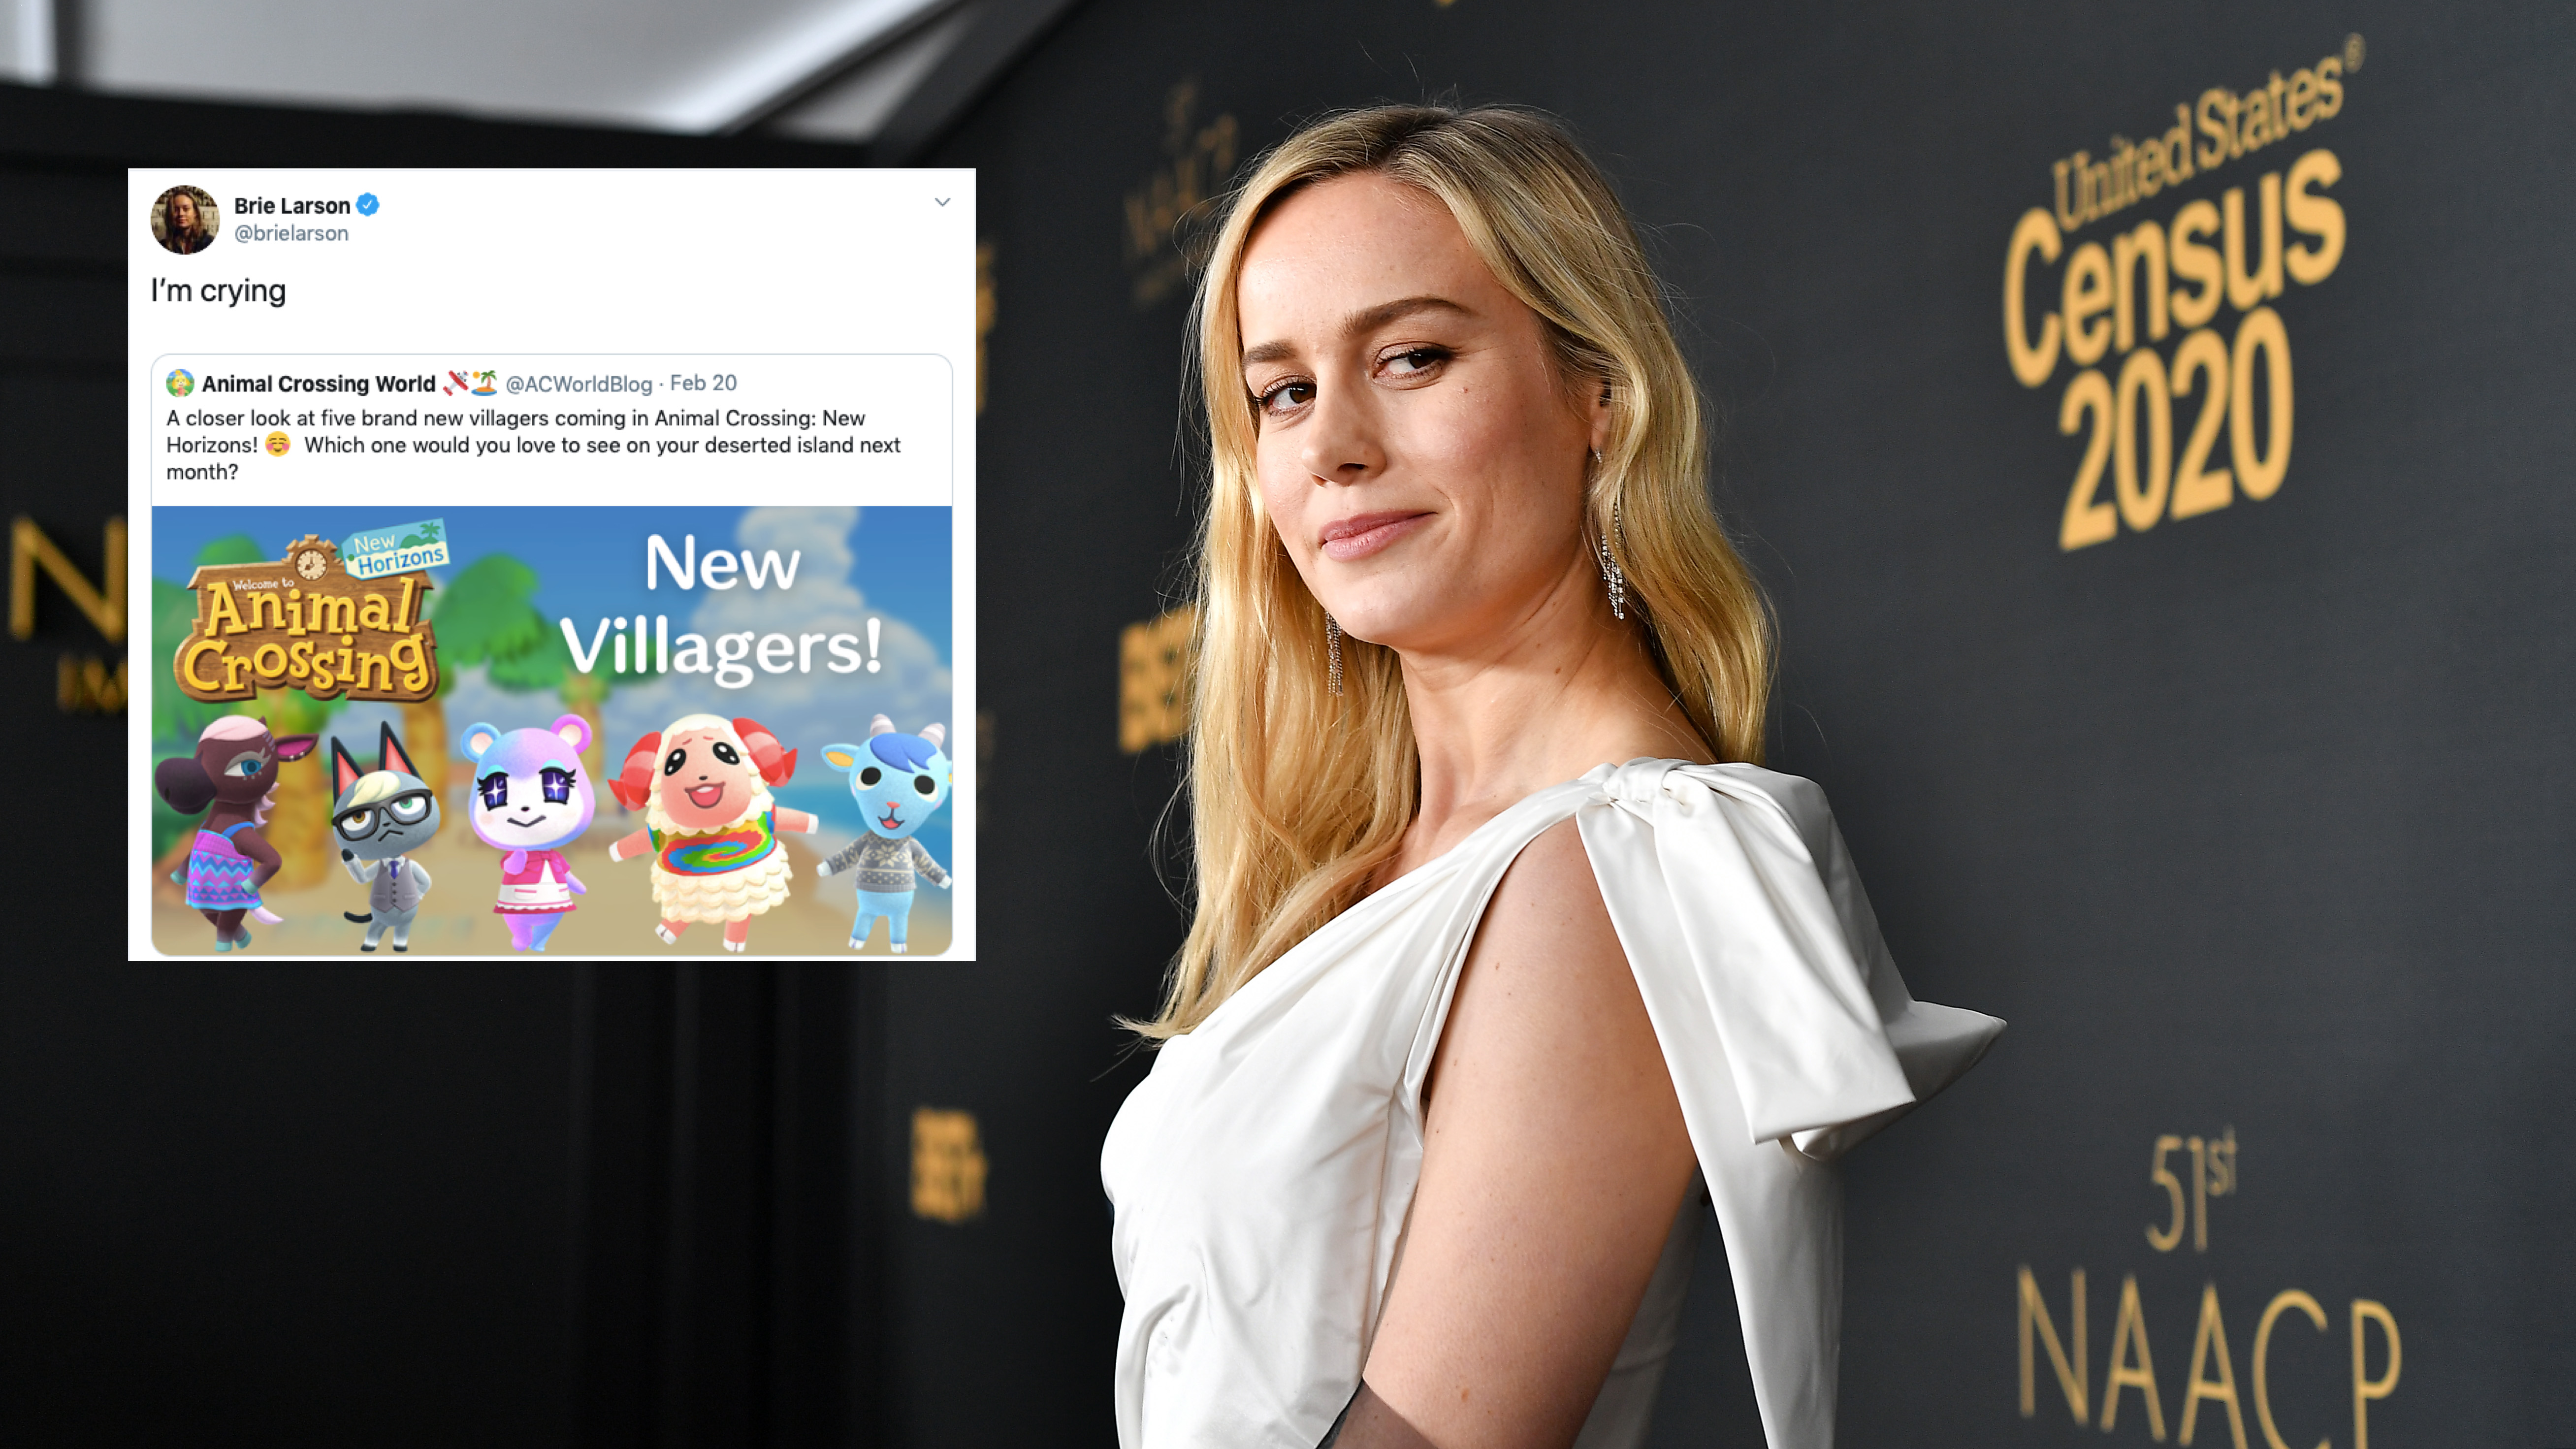 Who Did Brie Larson Go As For Halloween 2020 Brie Larson cannot stop tweeting about 'Animal Crossing: New Horizons'